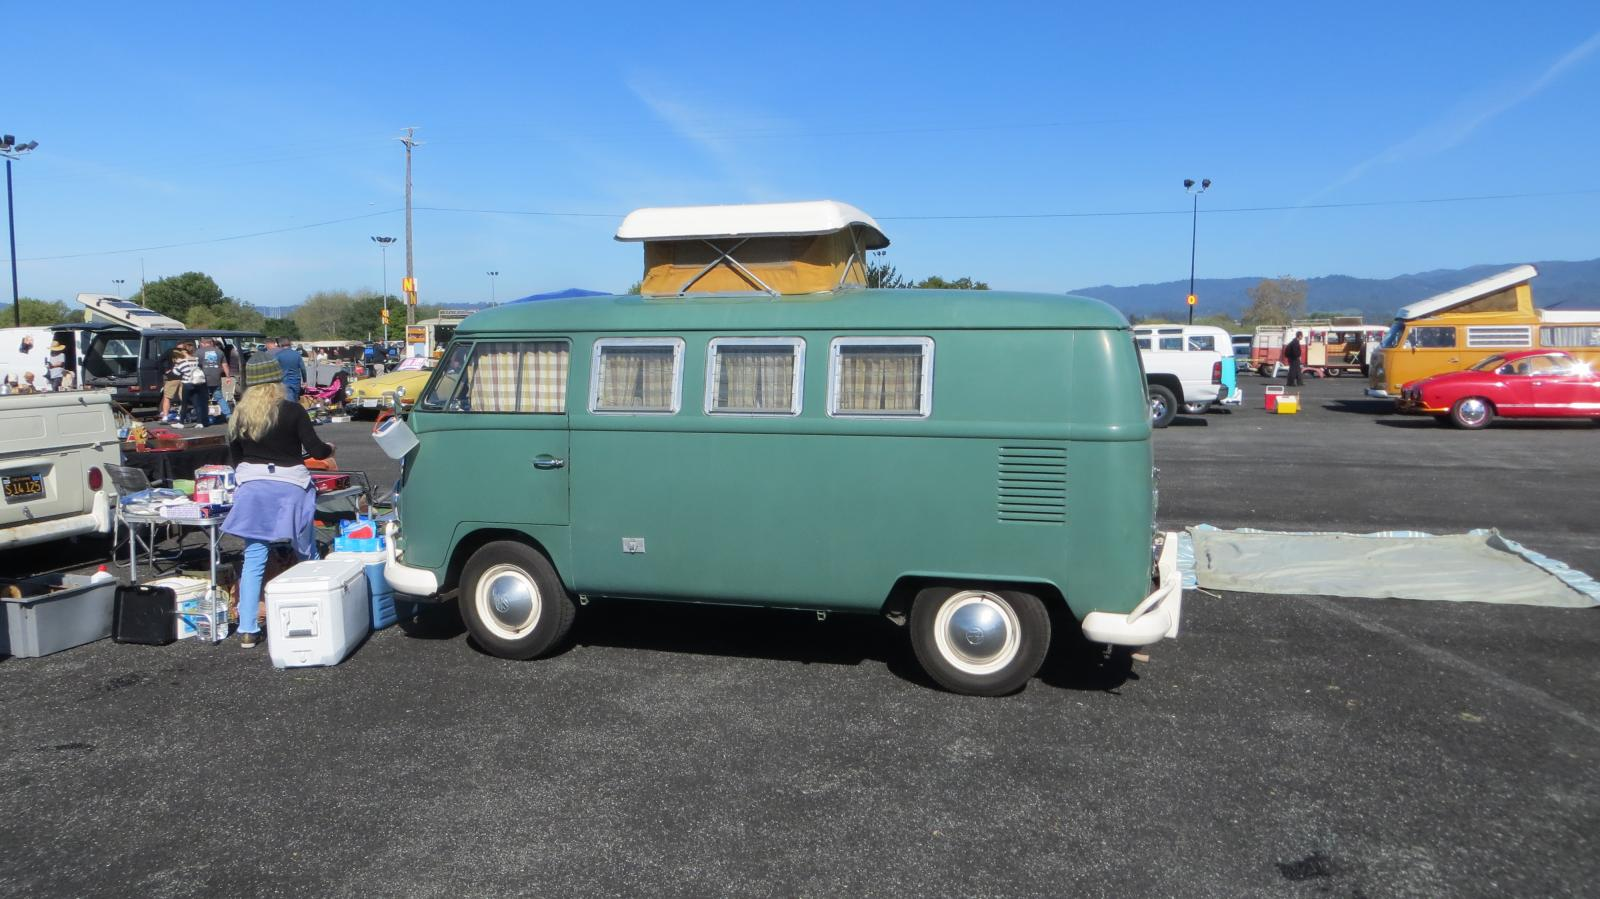 Split Camper Photos from Red Barn 2019 (Sat. April 13th, 2019)